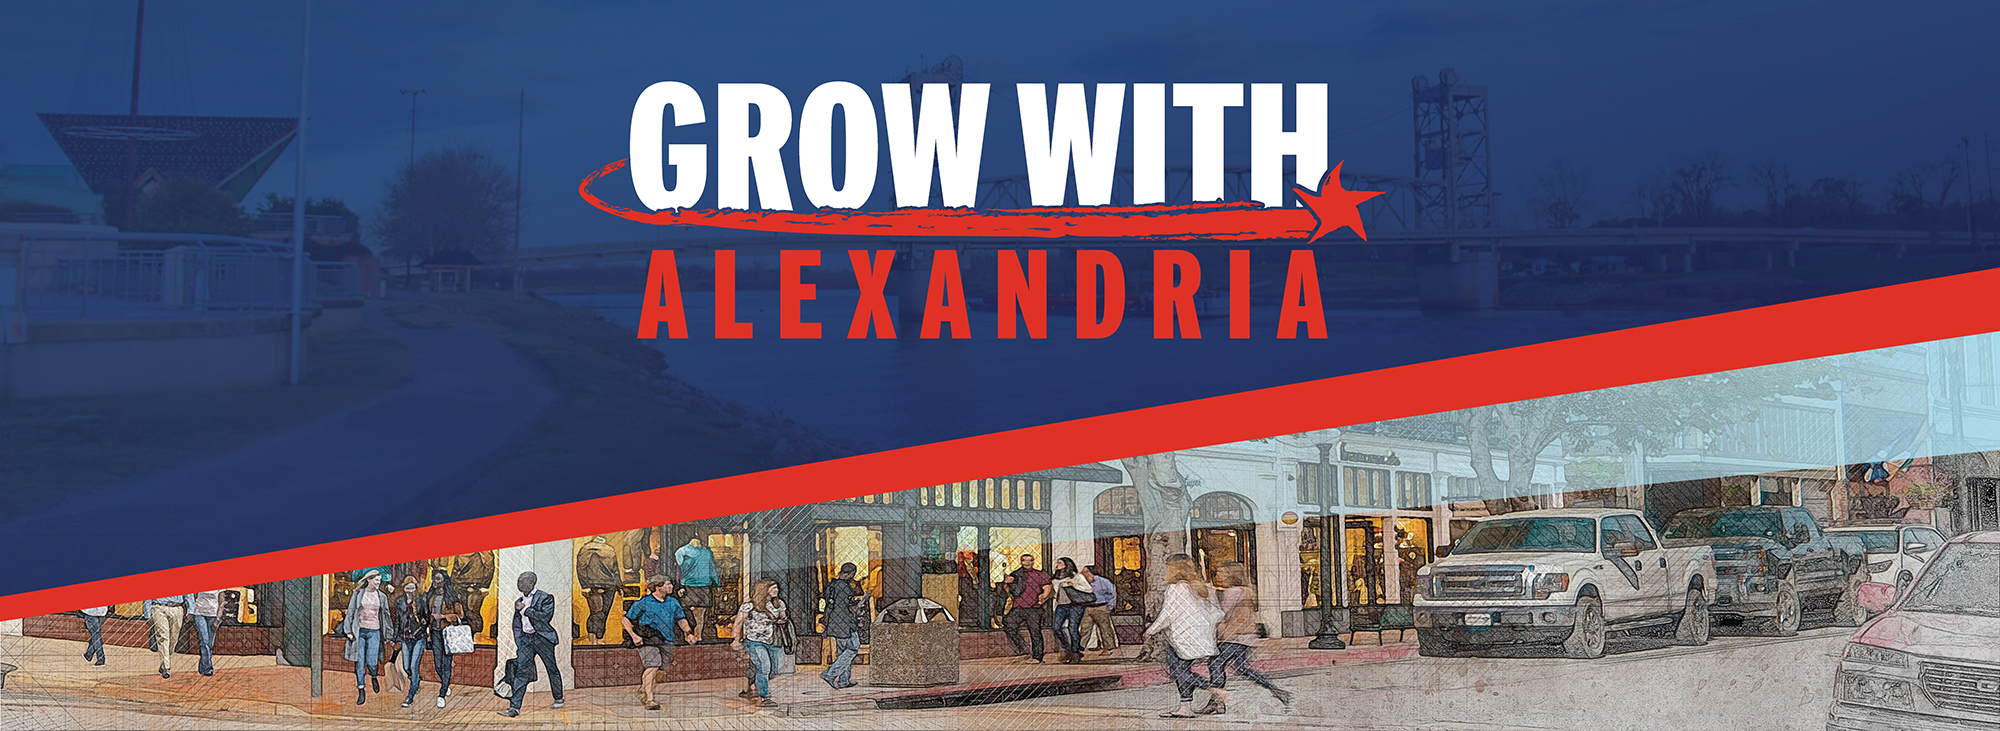 Grow with Alexandria City of Alexandria